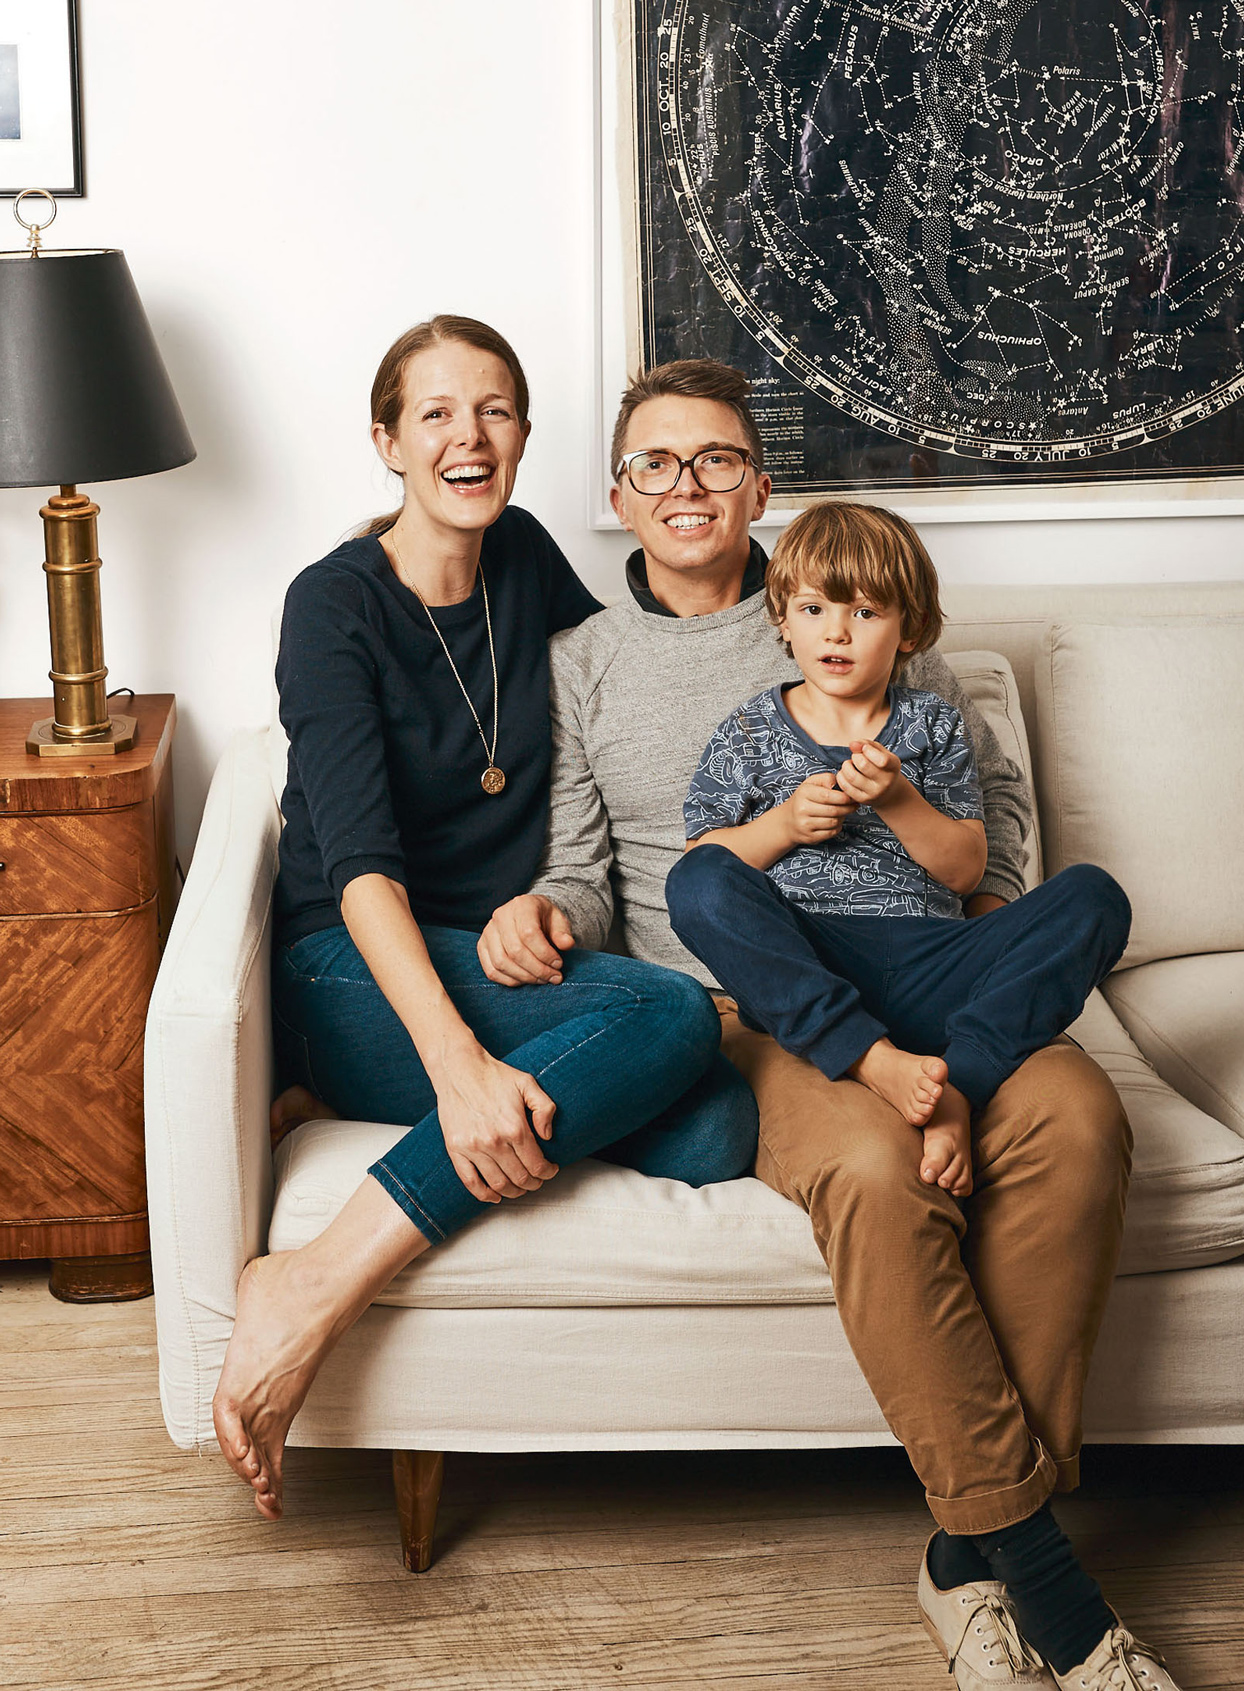 laura fenton sitting on couch with her husband and son